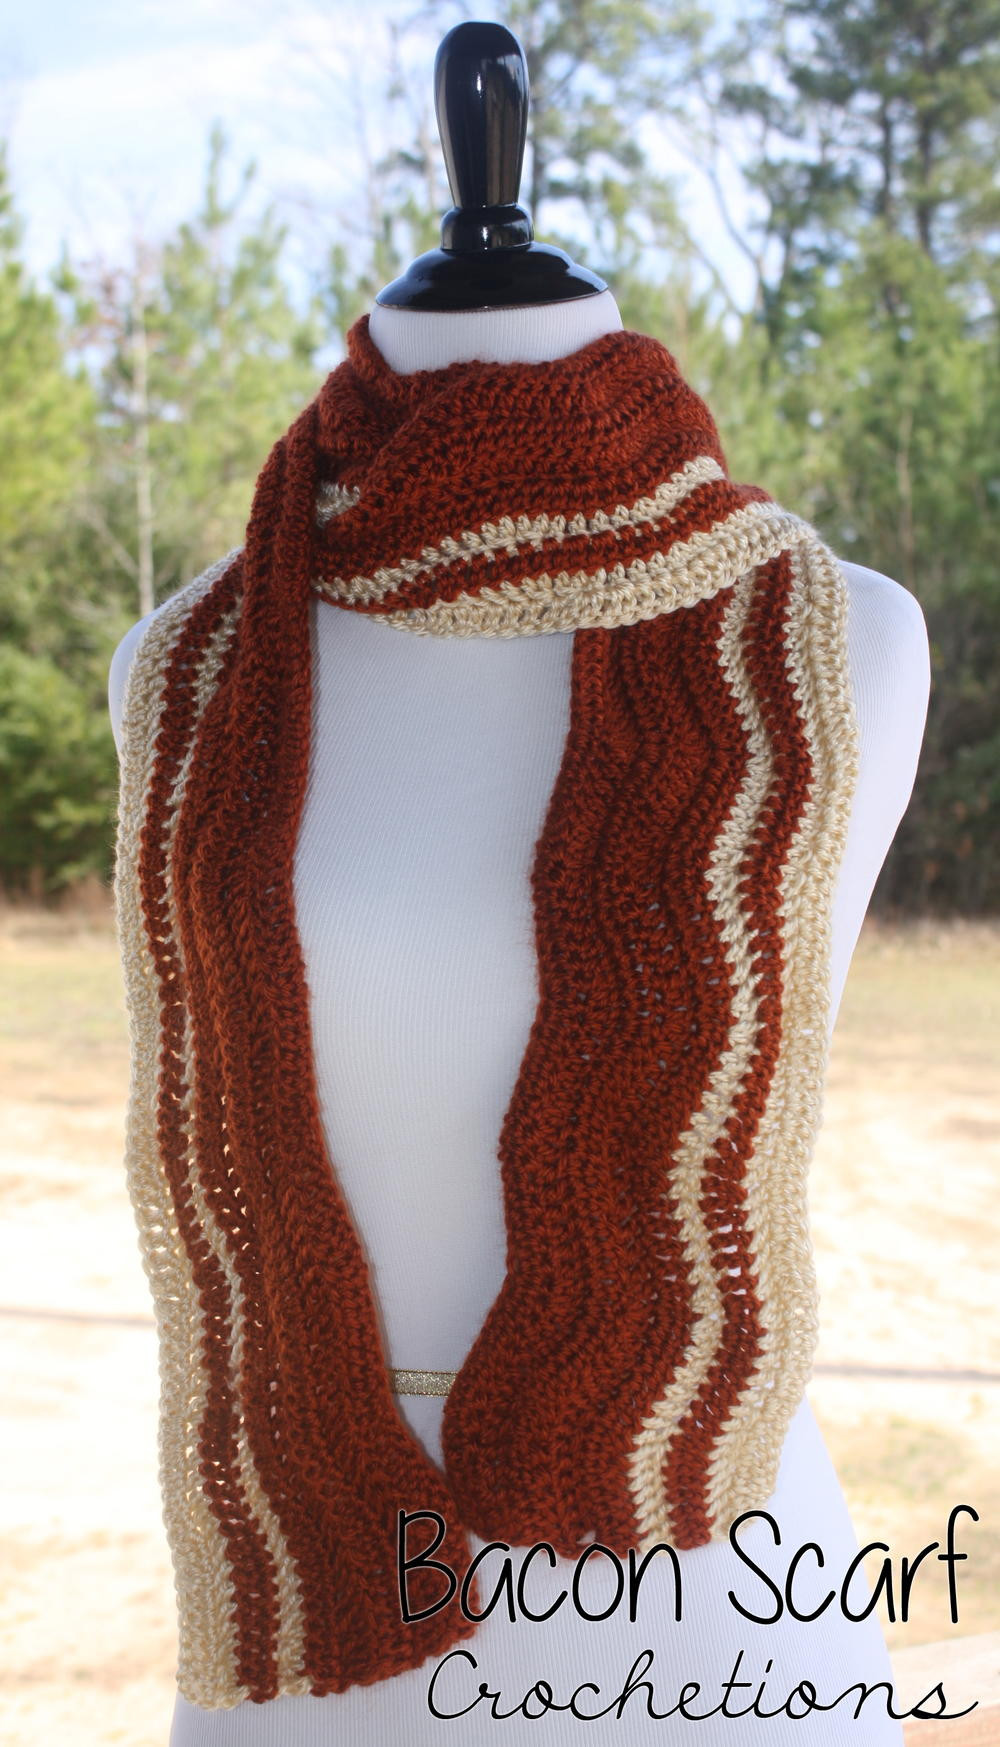 Best Of Bacon Crochet Scarf Crochet Scarves Of Amazing 43 Photos Crochet Scarves